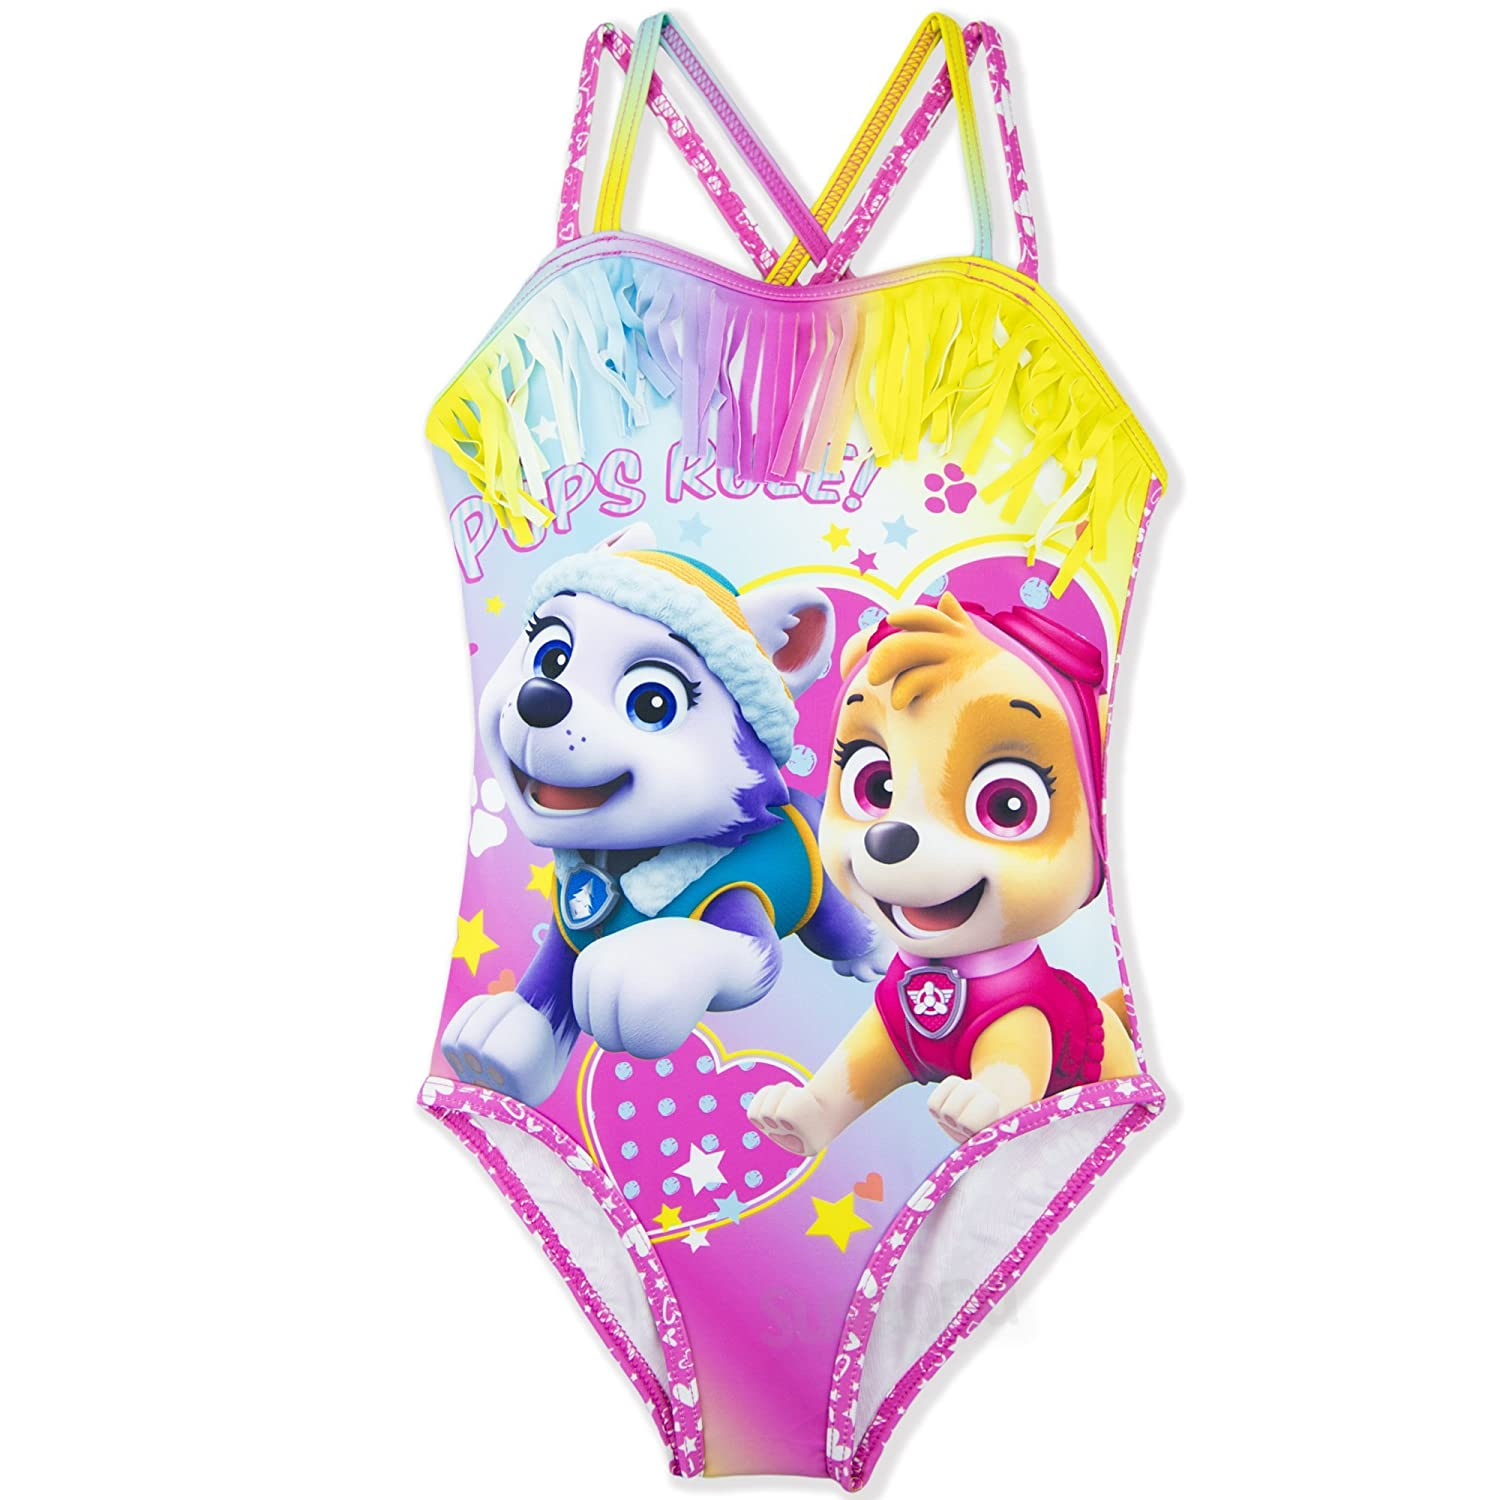 Paw Patrol Nickelodeon Official One Piece Girls Swimsuit Swimming Costume 3-8 Years - New 2018